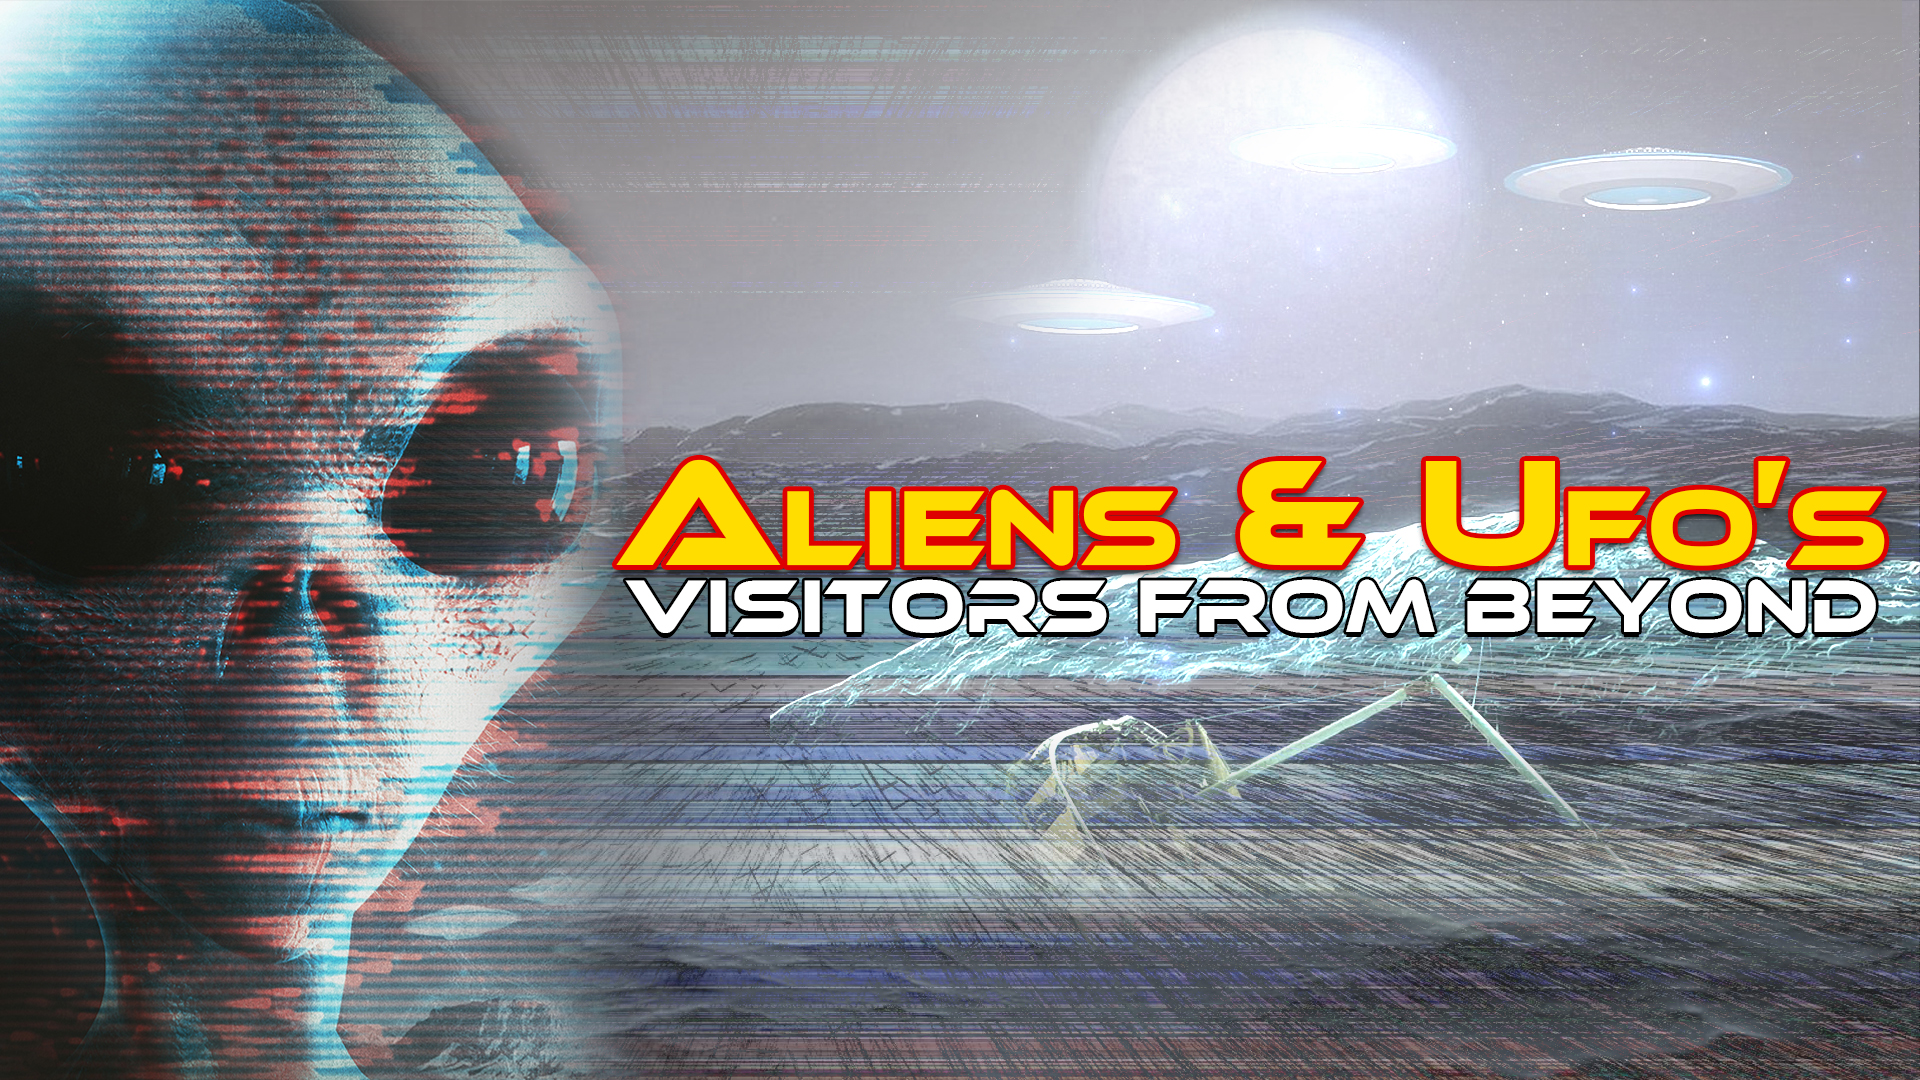 Aliens & UFO's - Visitors From Beyond